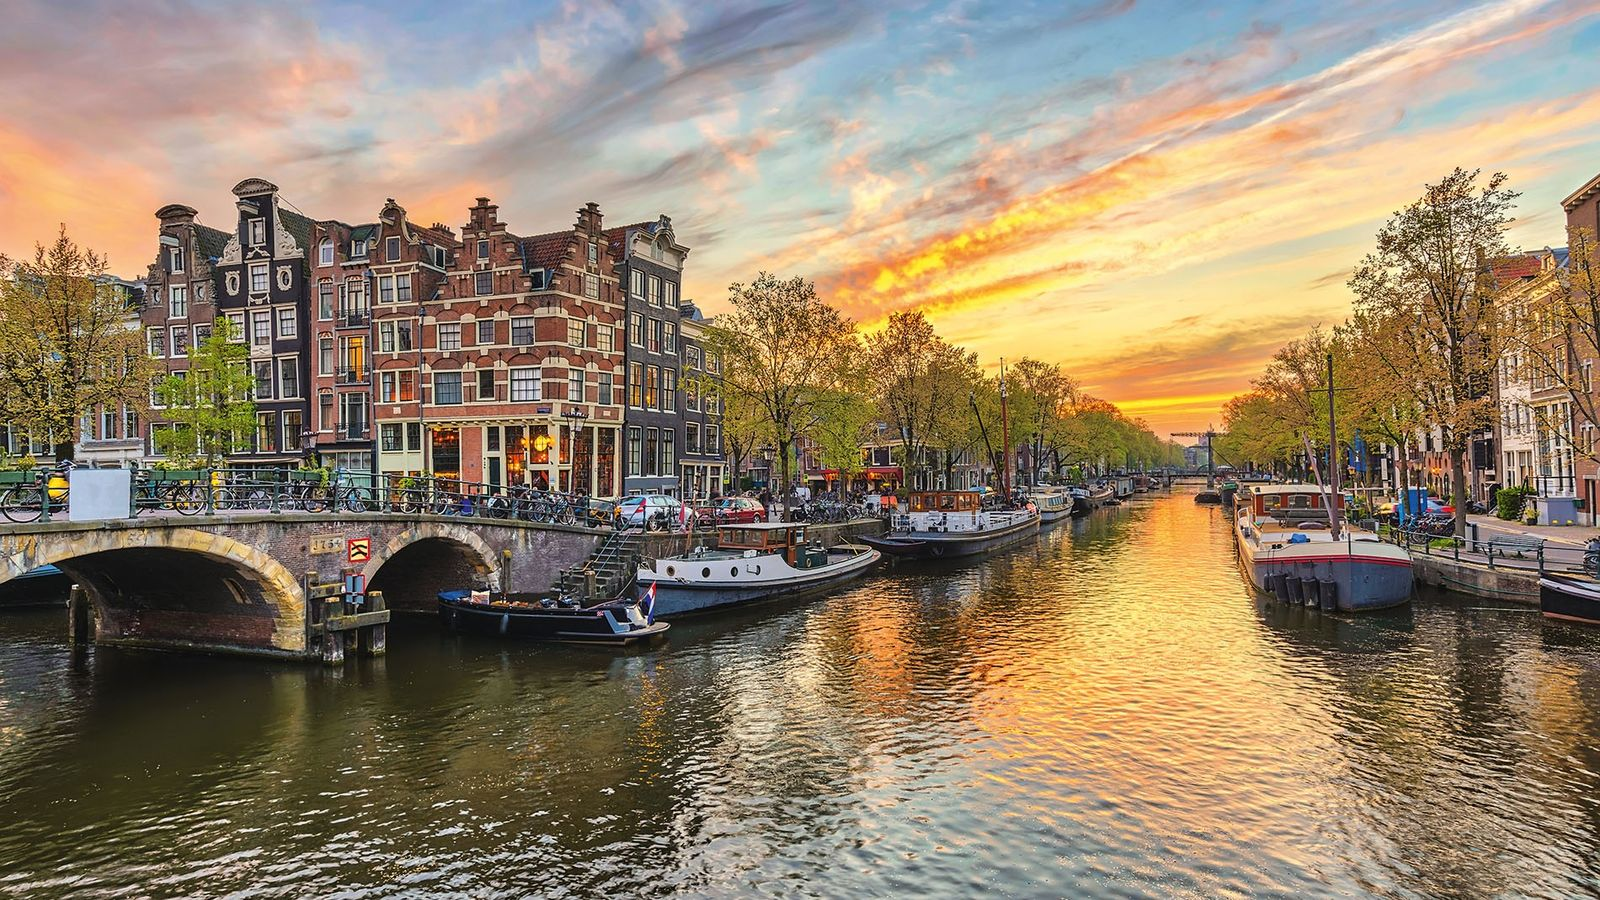 Amsterdam is a city that continues to reinvent itself, with lesser-visited districts burgeoning in light of a slew of ...